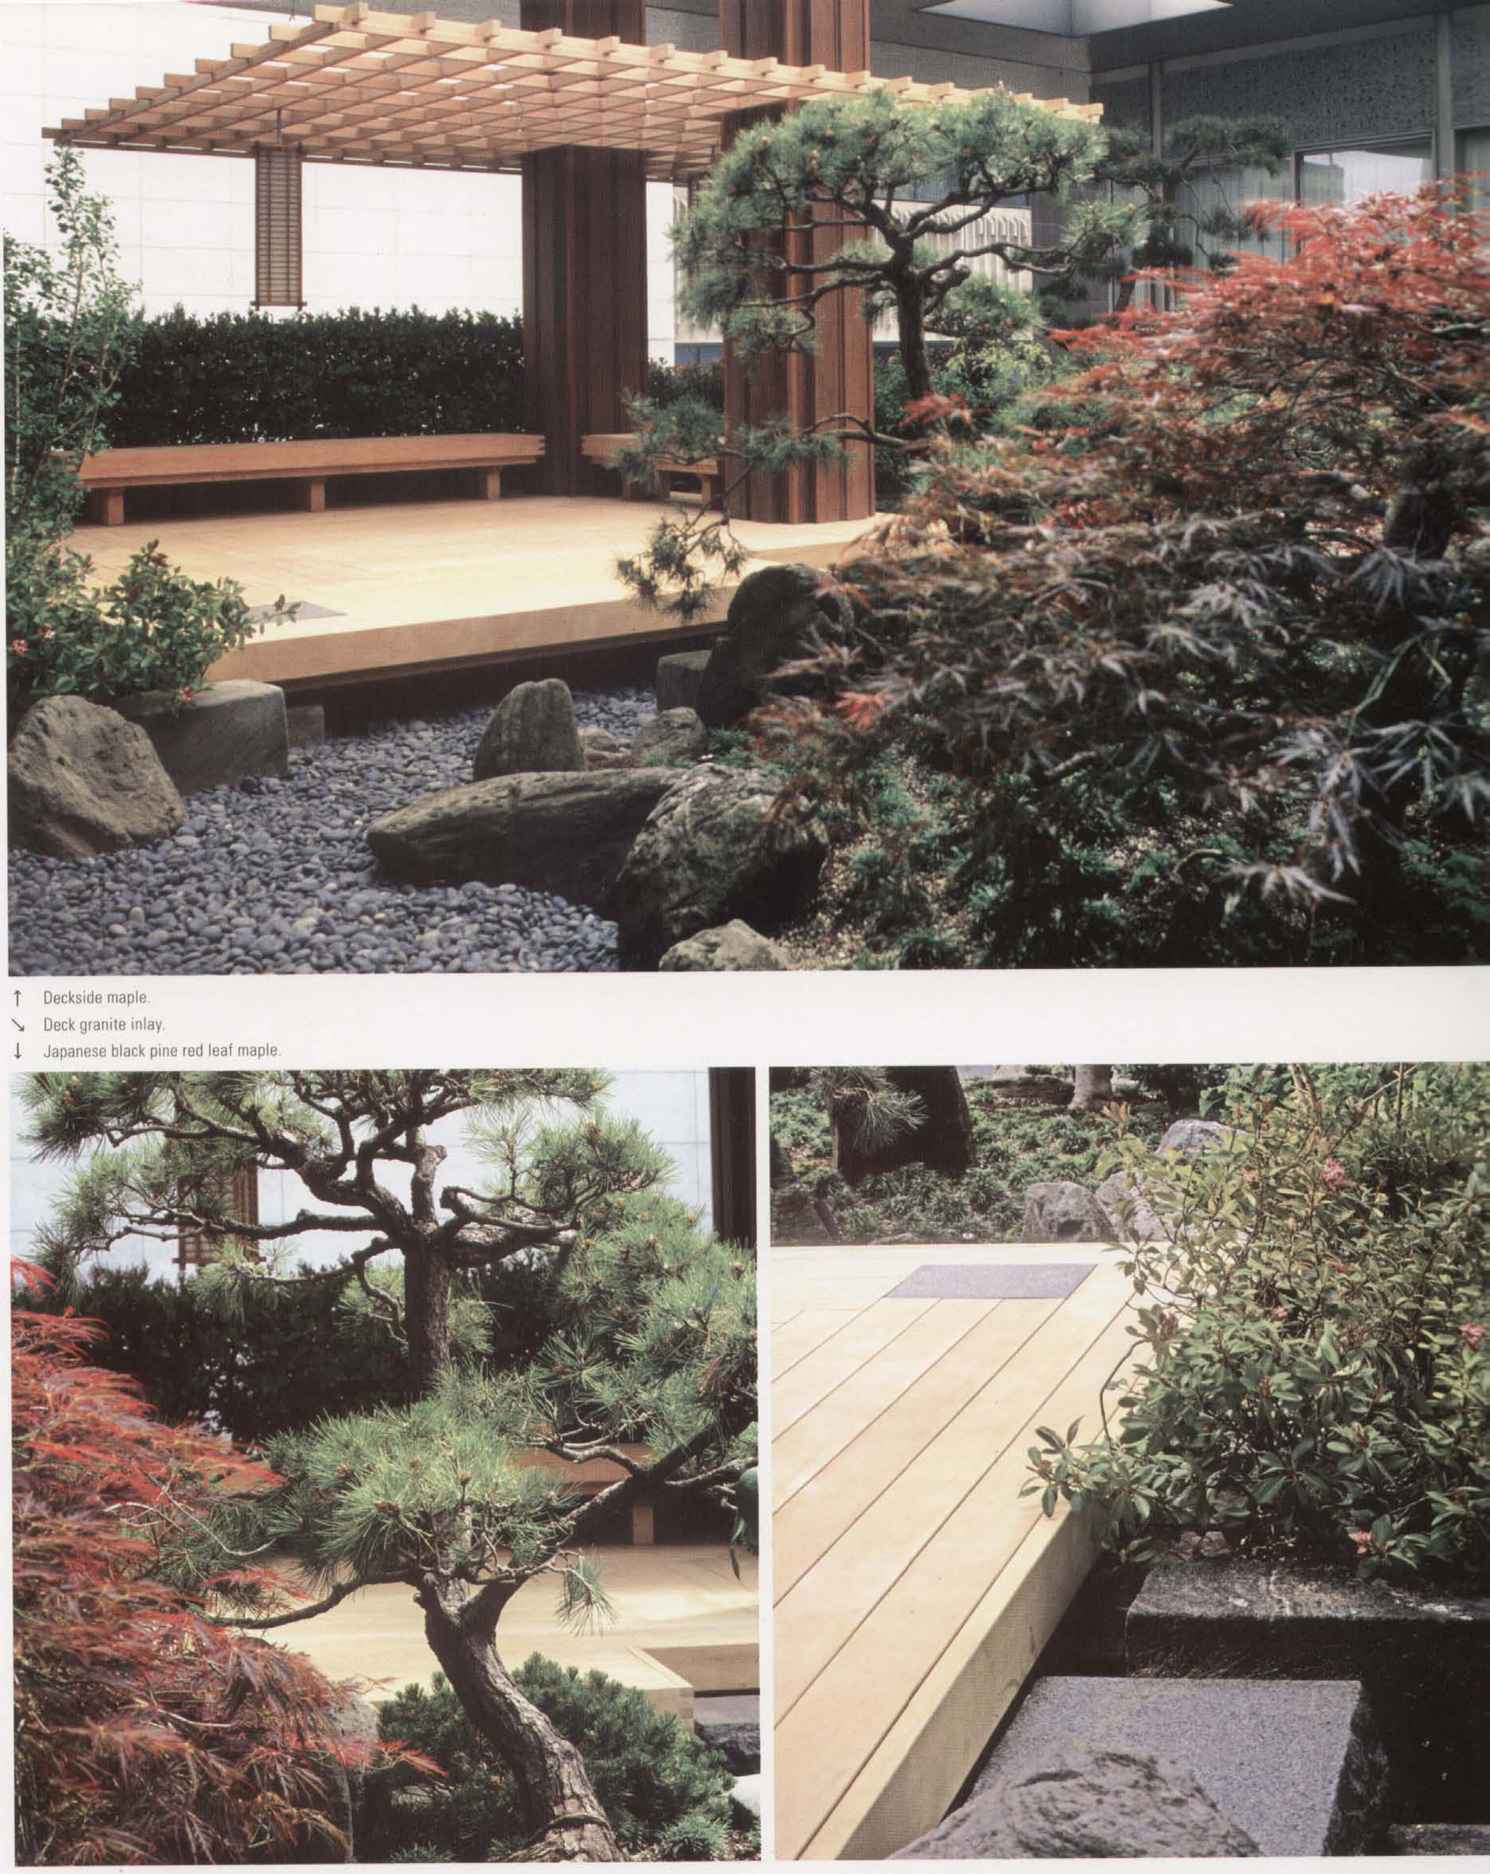 Suzman cole design associates landscape design for Associate landscape architect